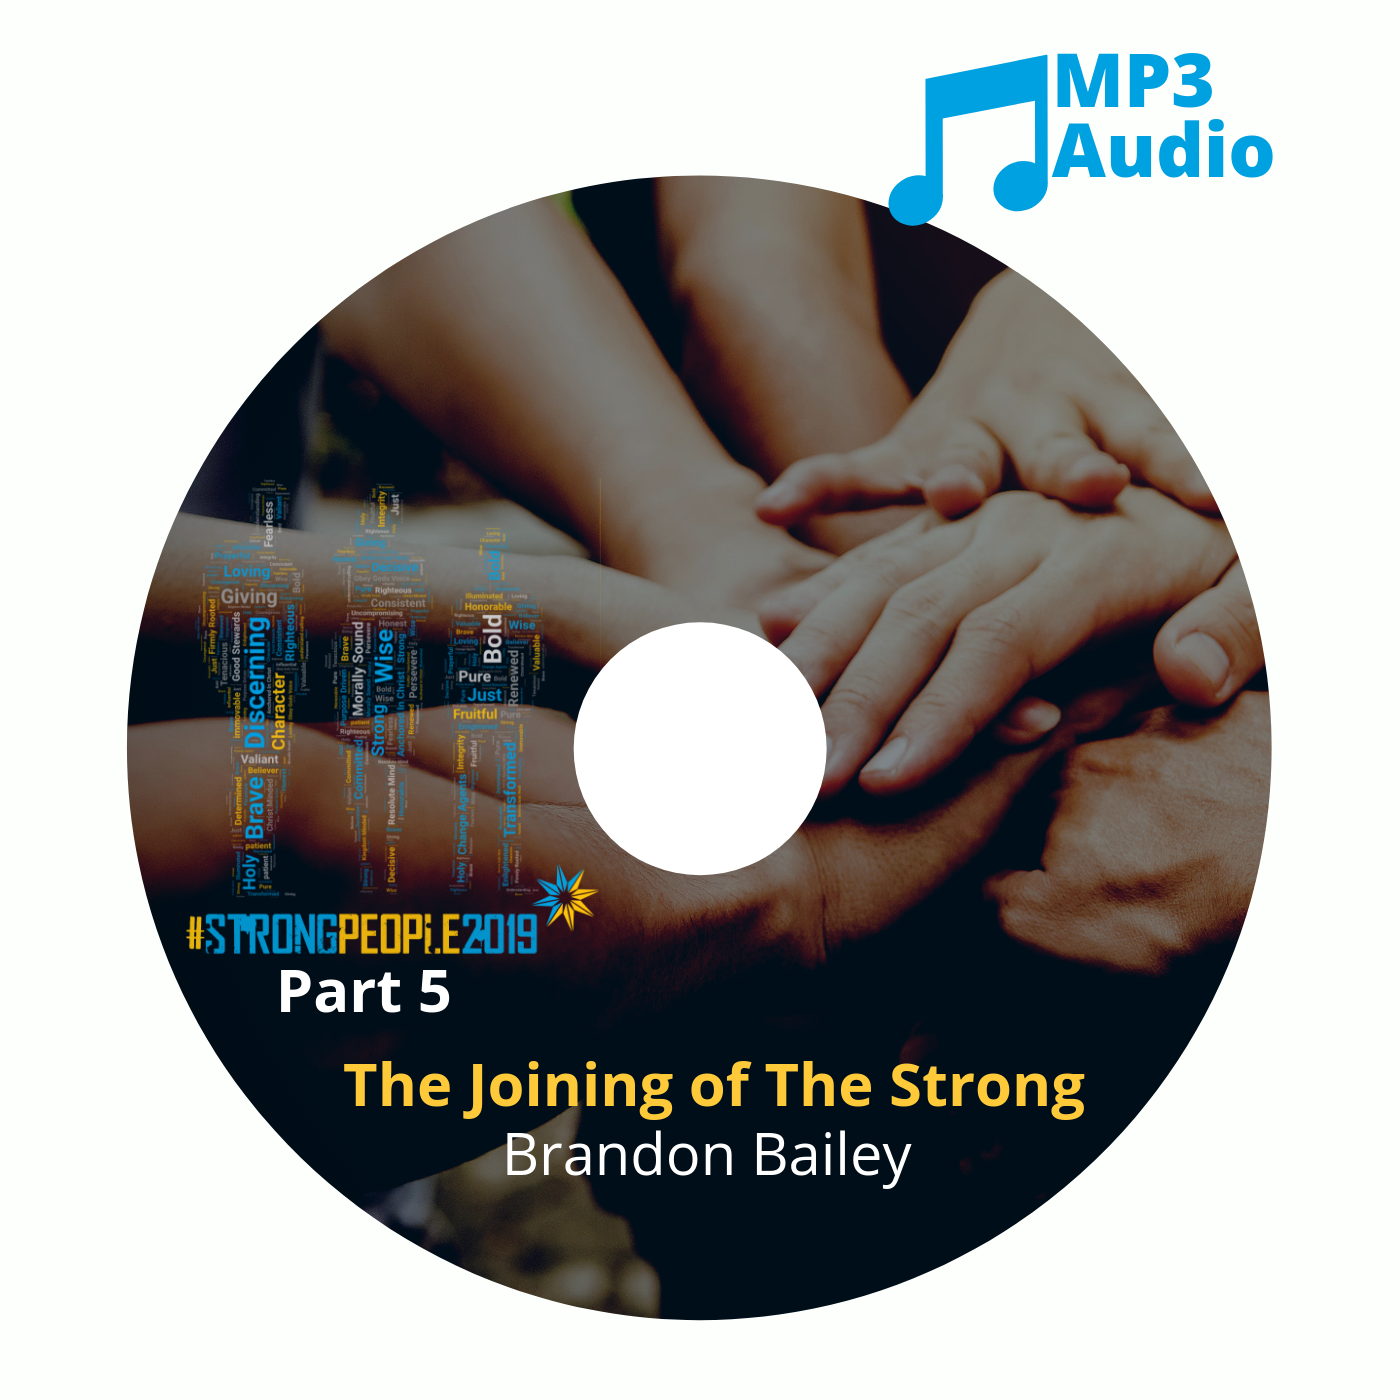 Strong People Part 5: Joining of The Strong